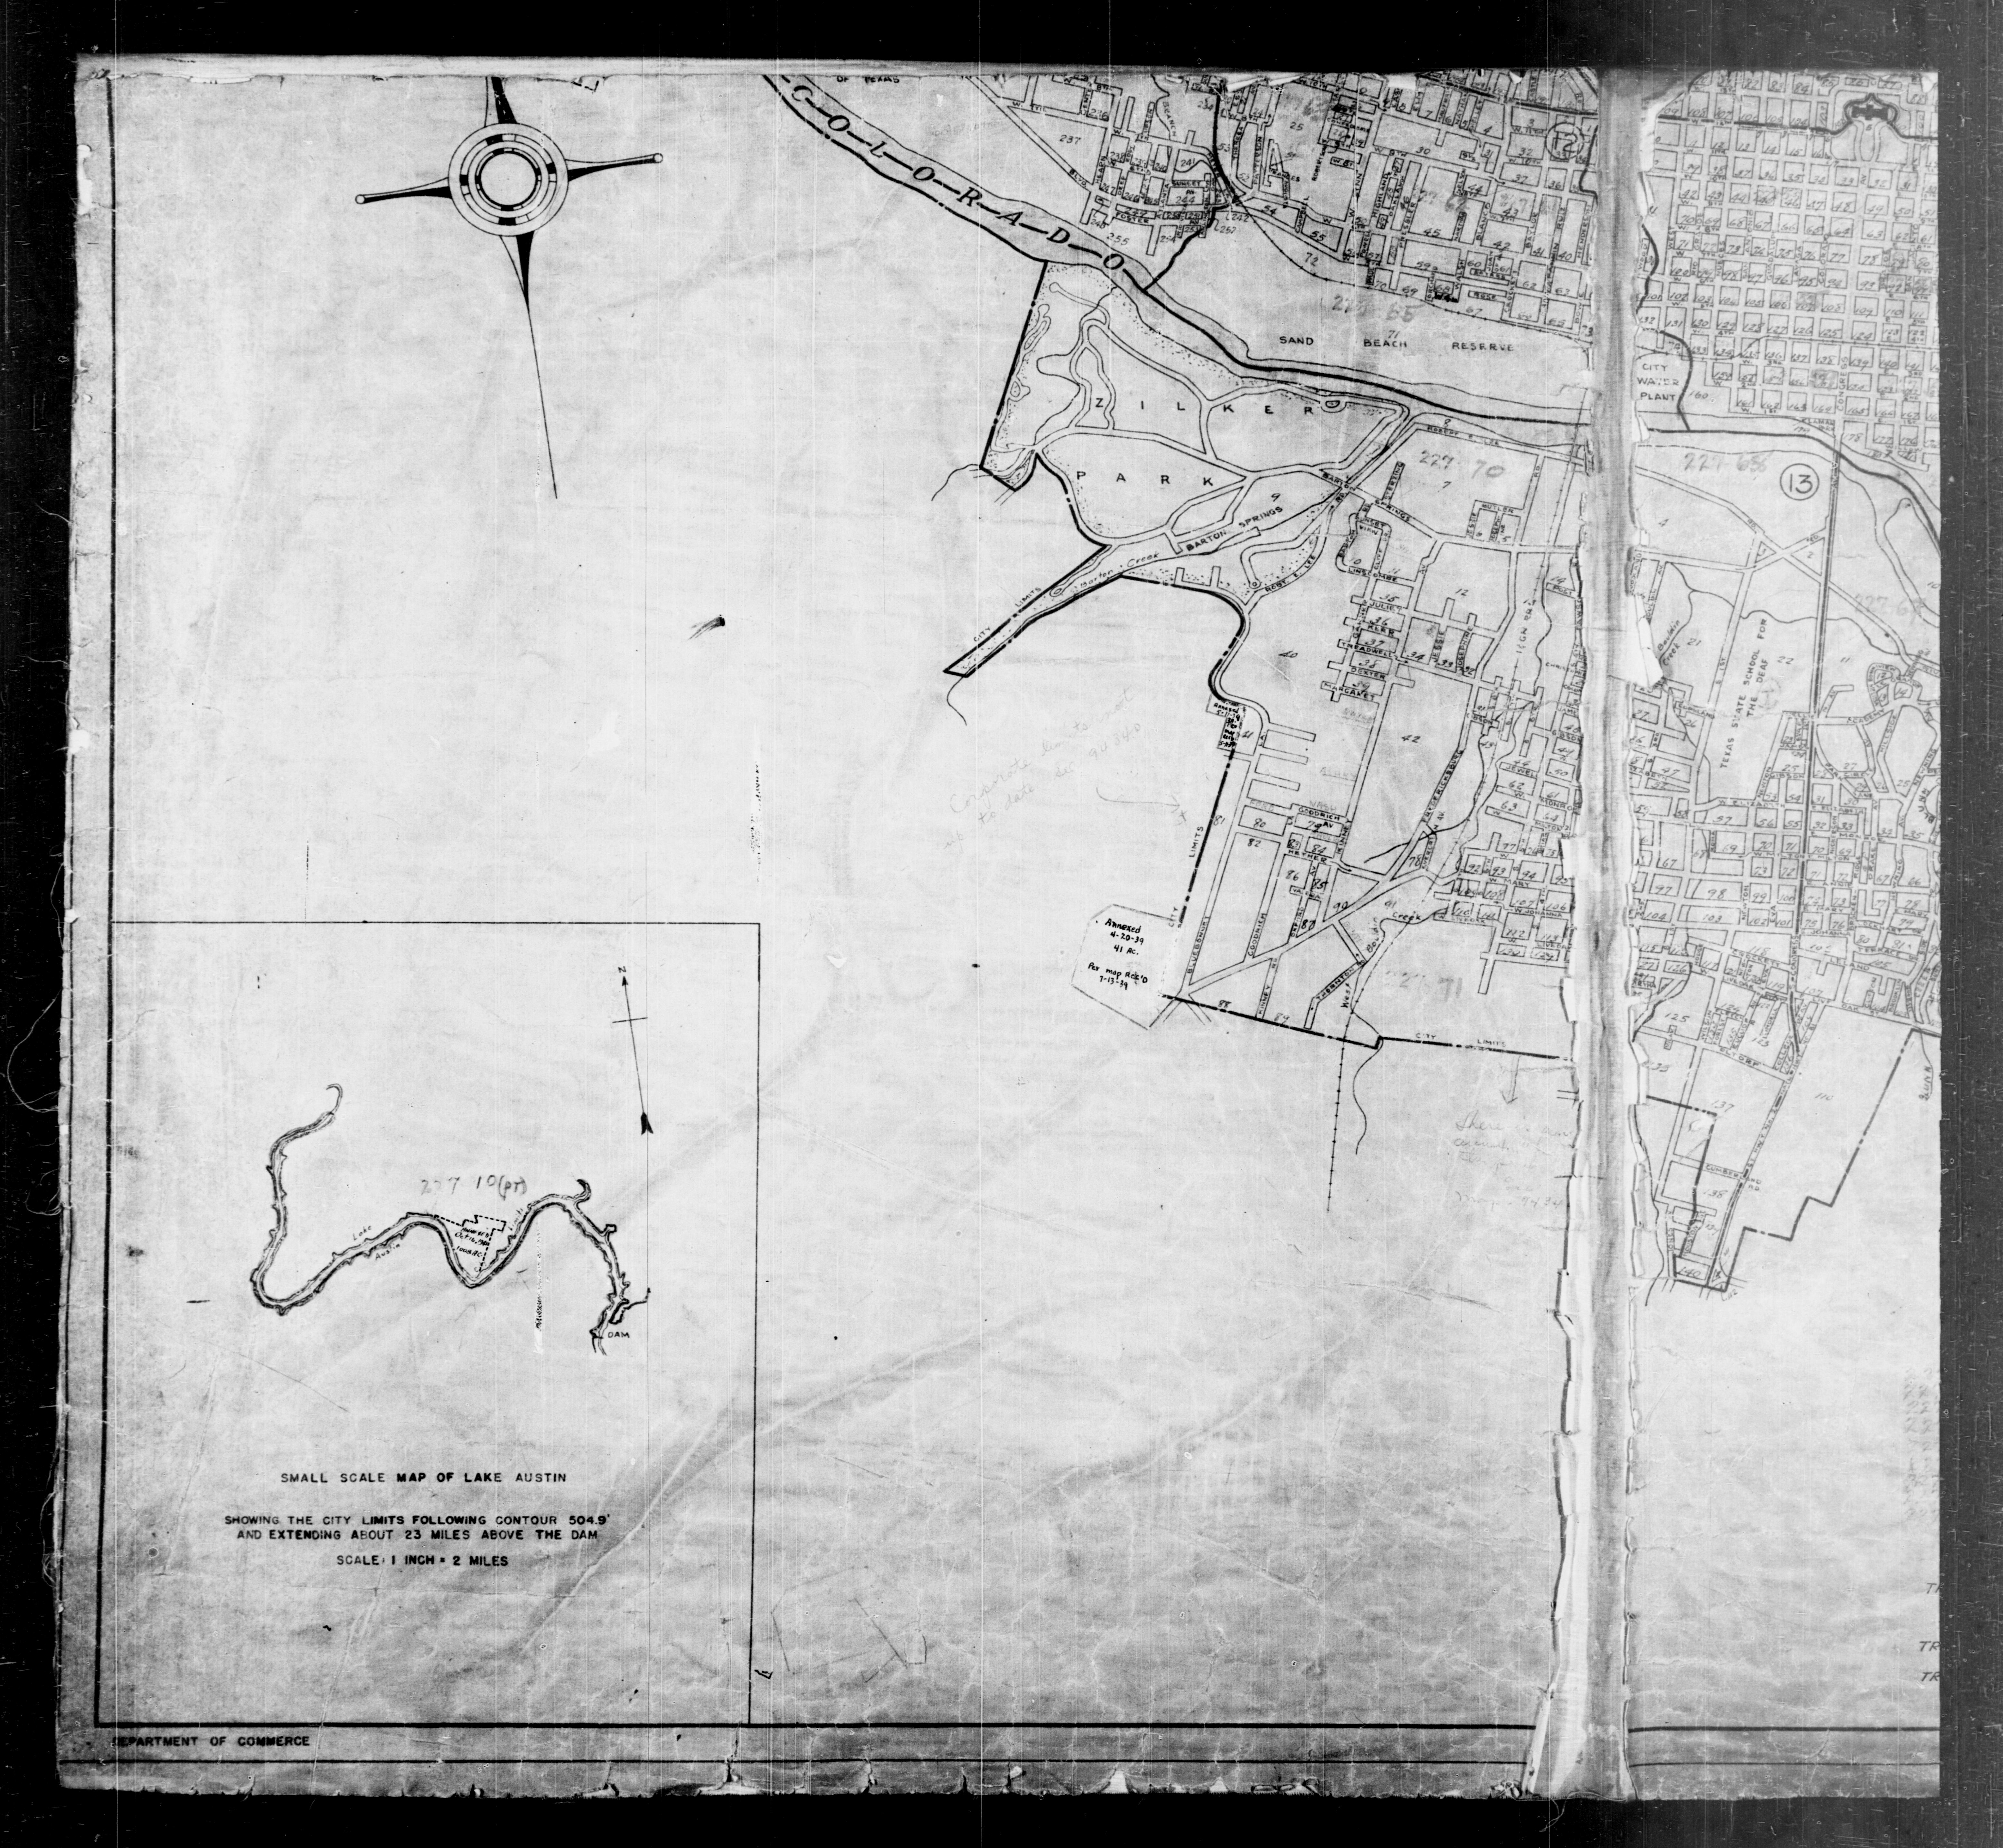 Austin, Texas Maps - Perry-Castañeda Map Collection - UT Library Online